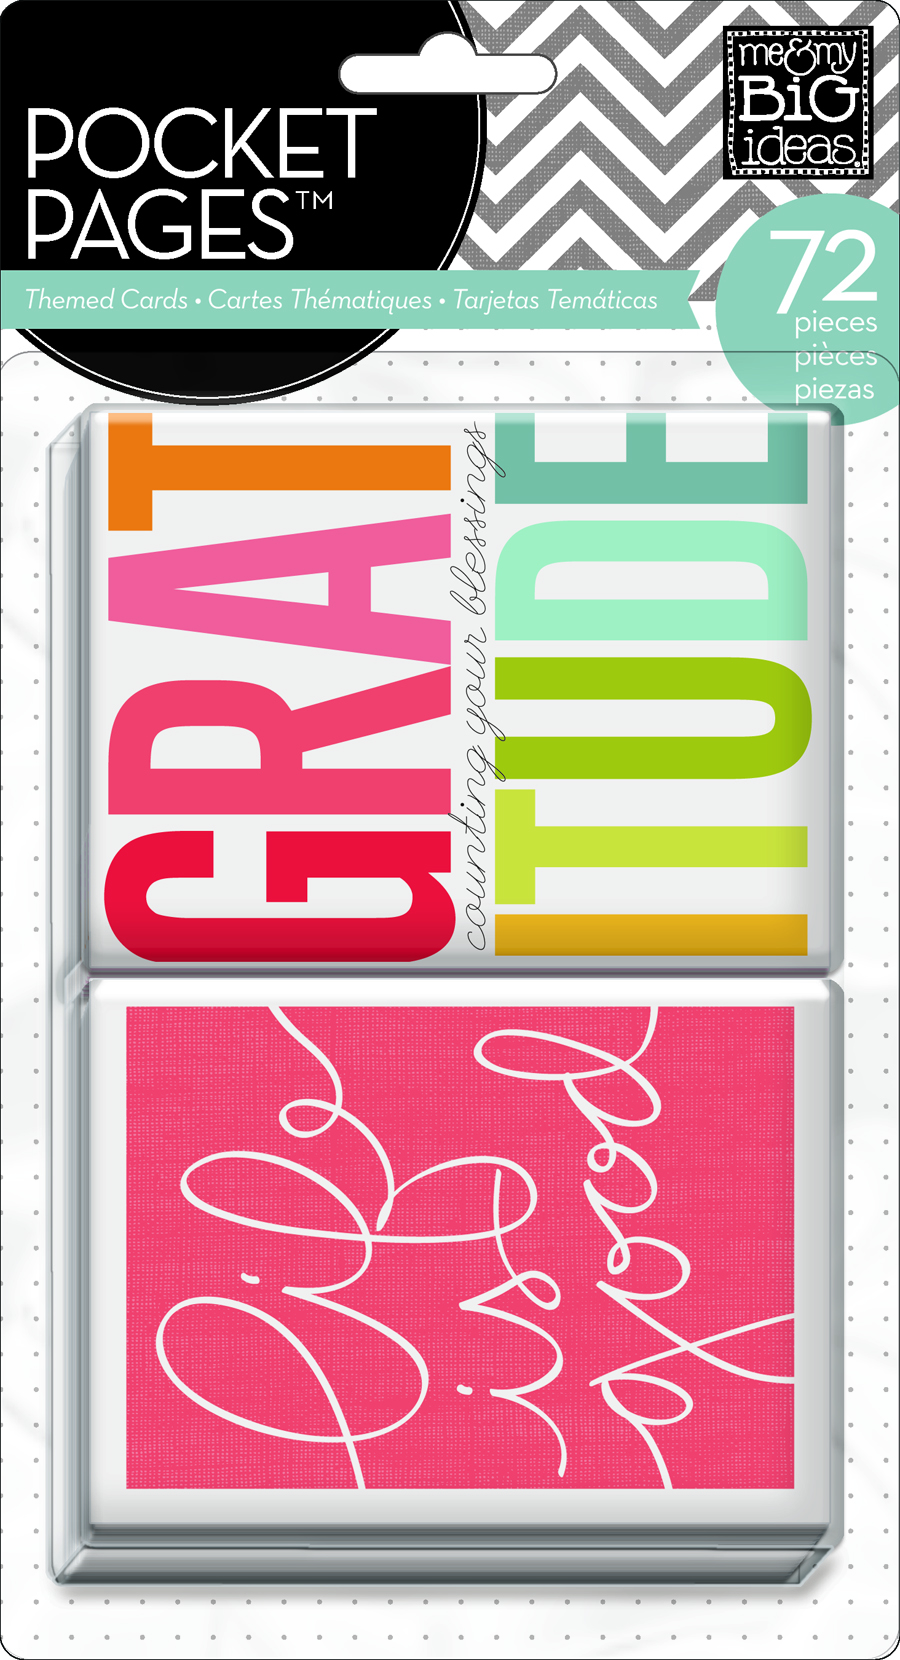 'Story of Me' POCKET PAGES™ cards | me & my BIG ideas.jpg